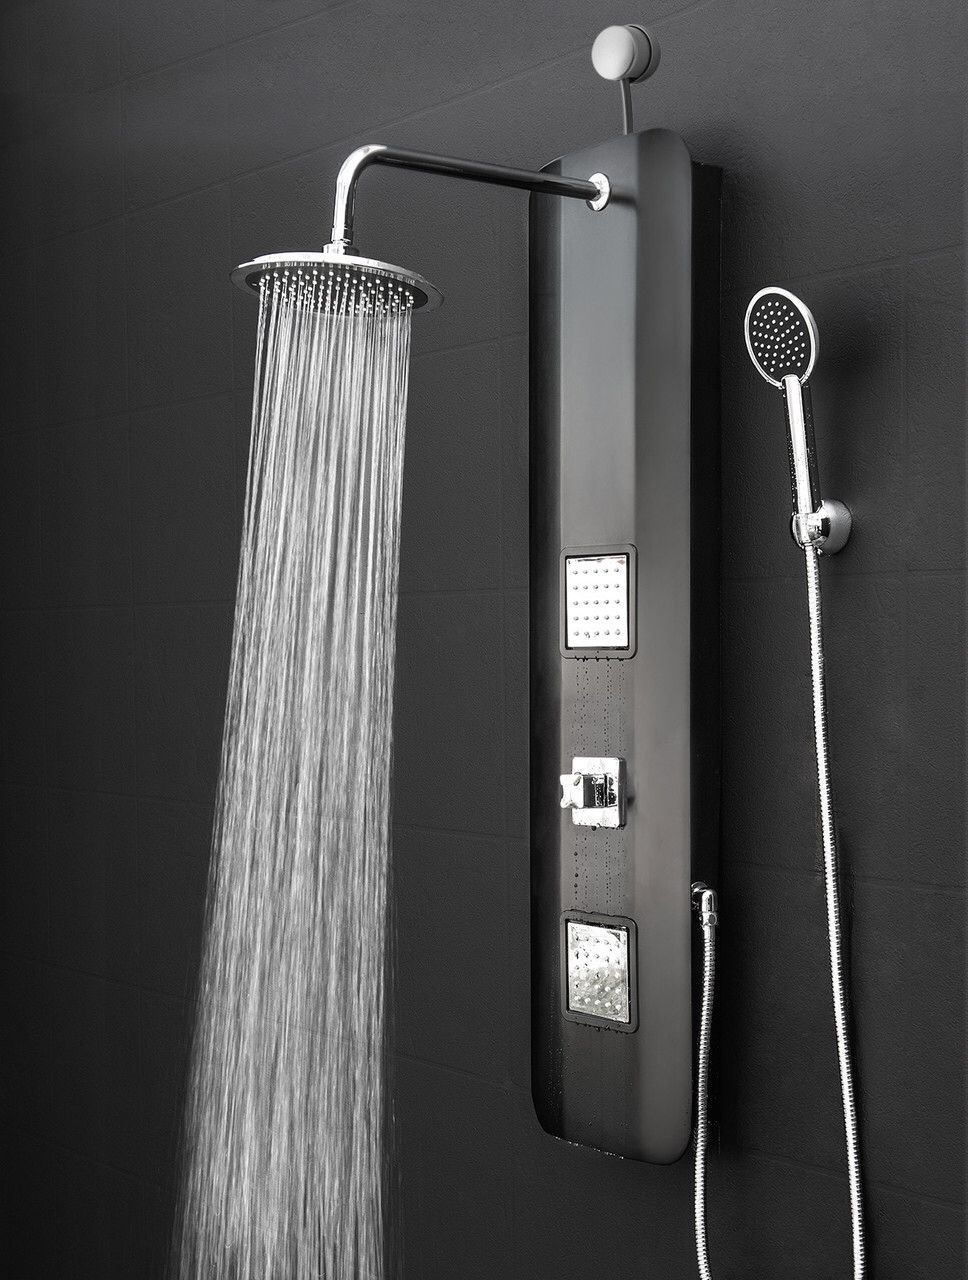 Features Shower Panel System Comes With A Easy Connect Adapter Rainfall Heads